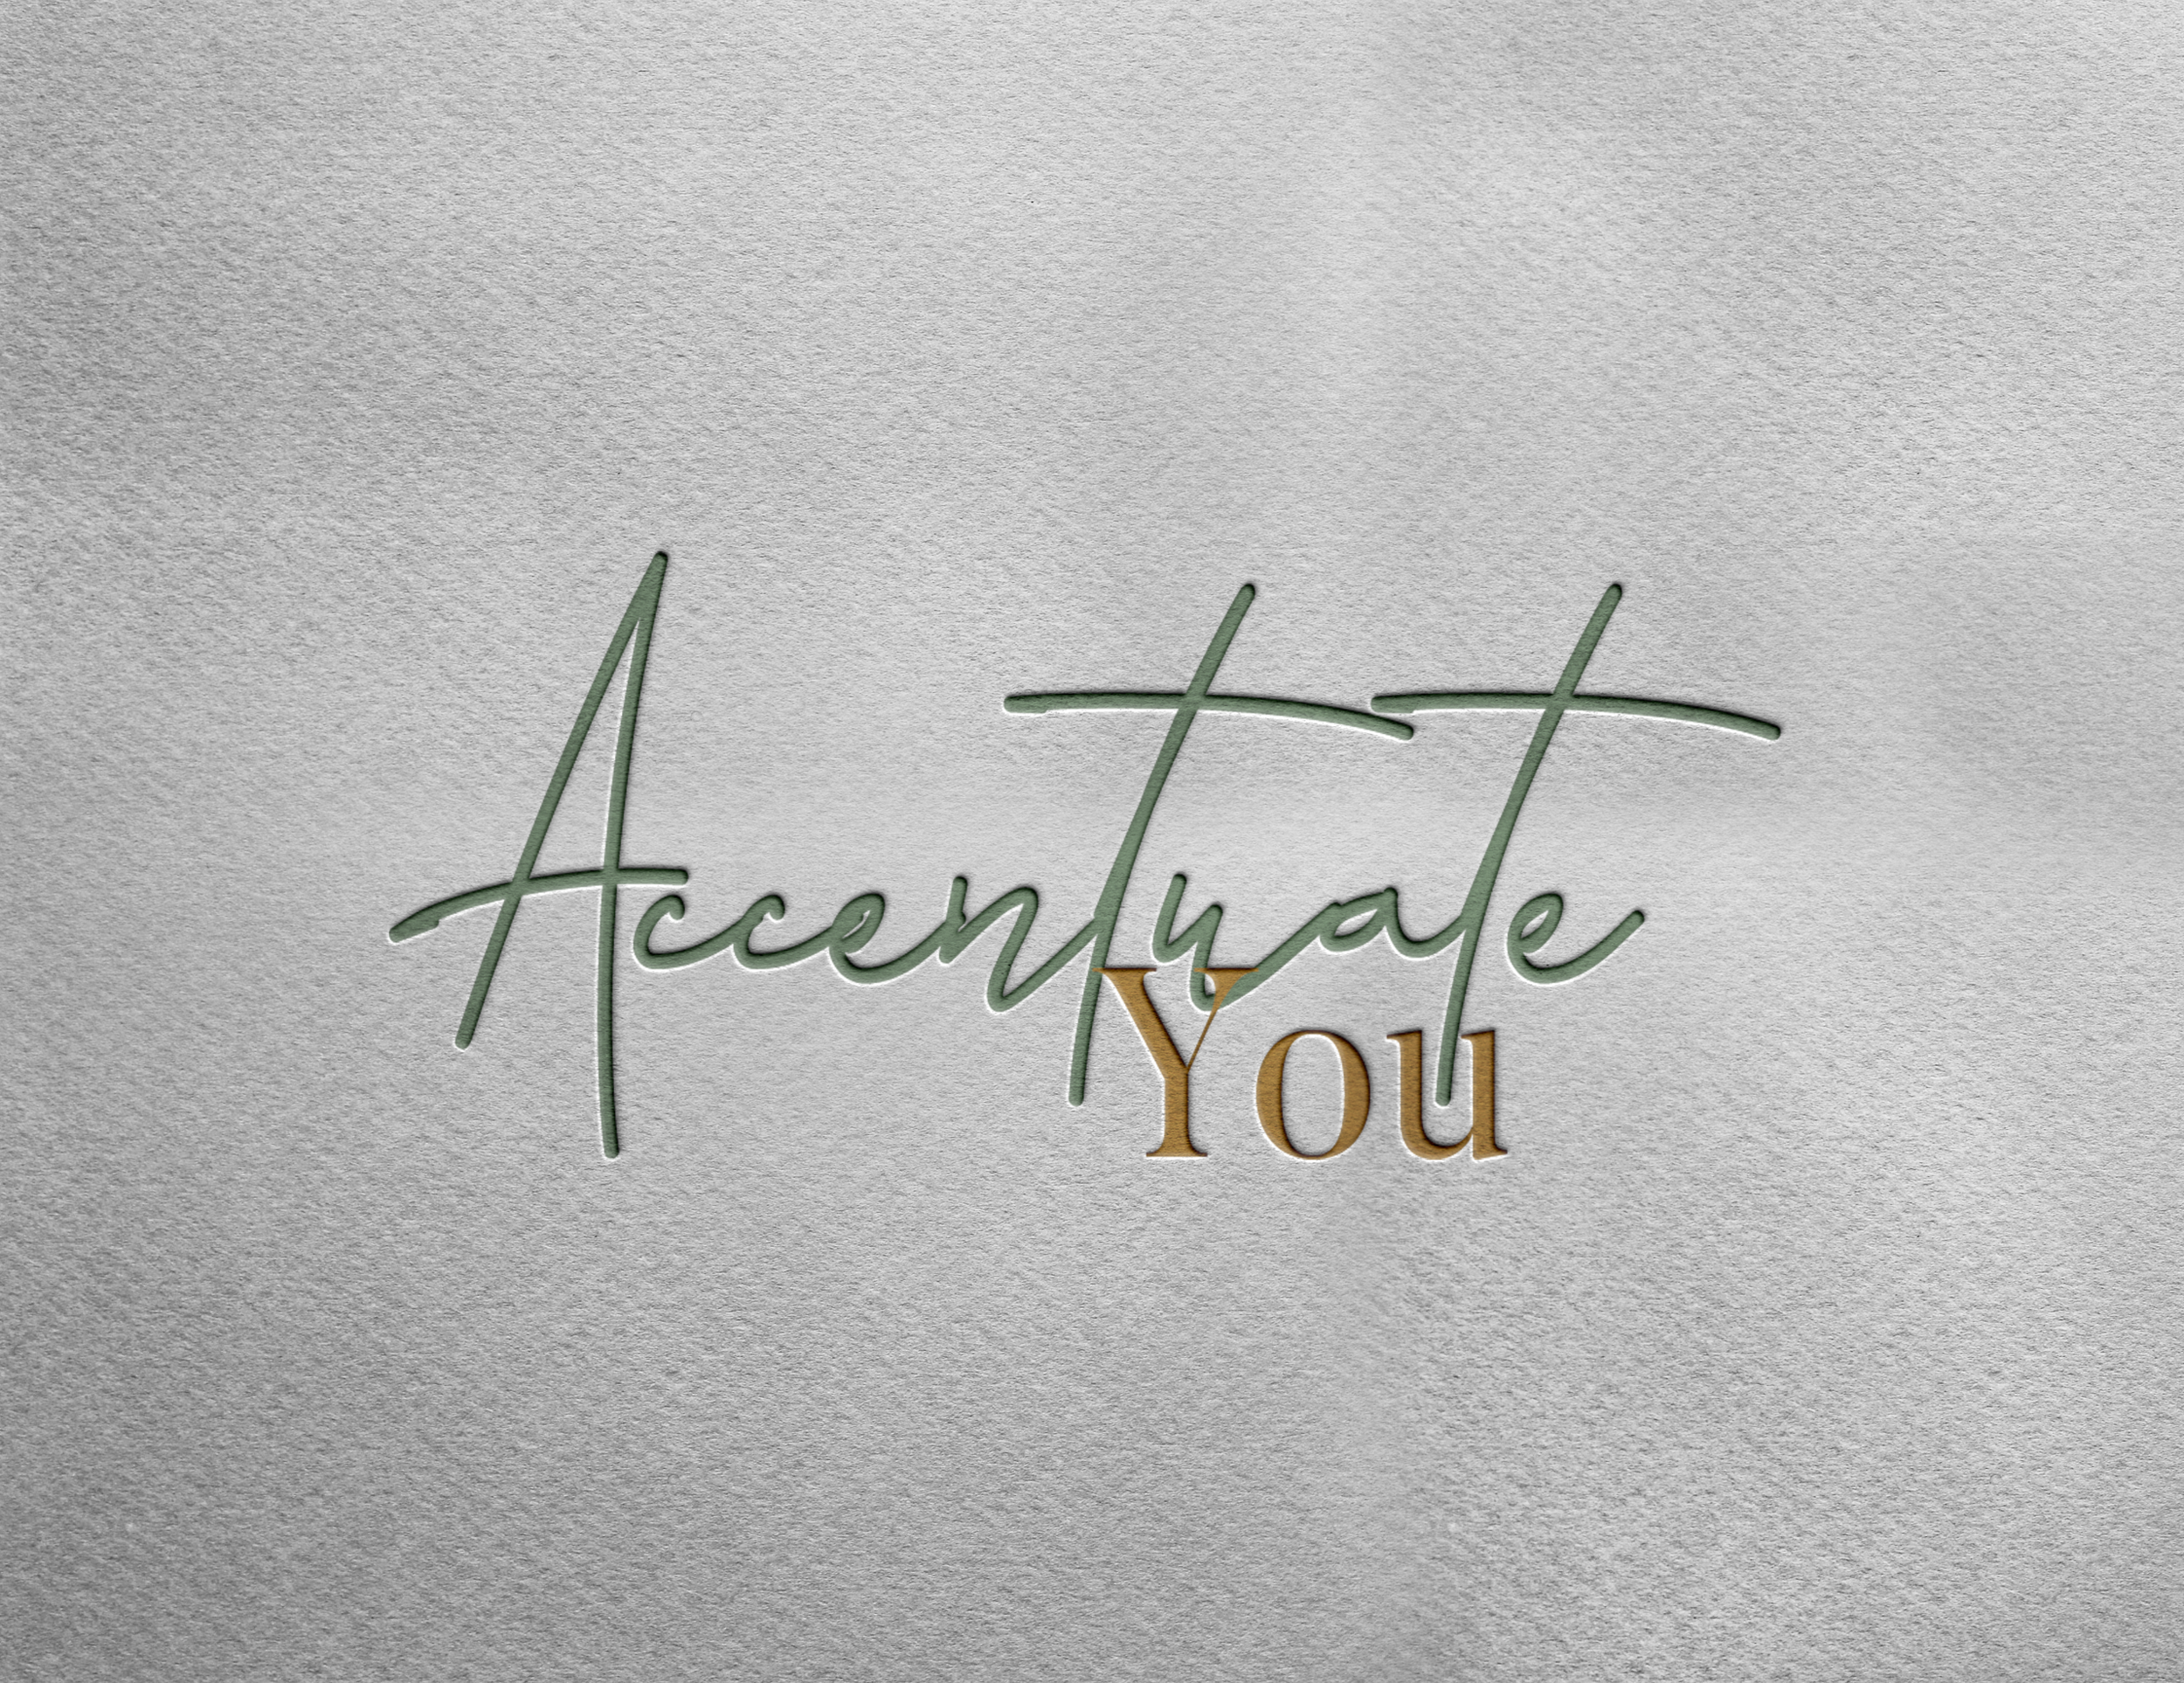 Accentuate You Logo Mockup.png